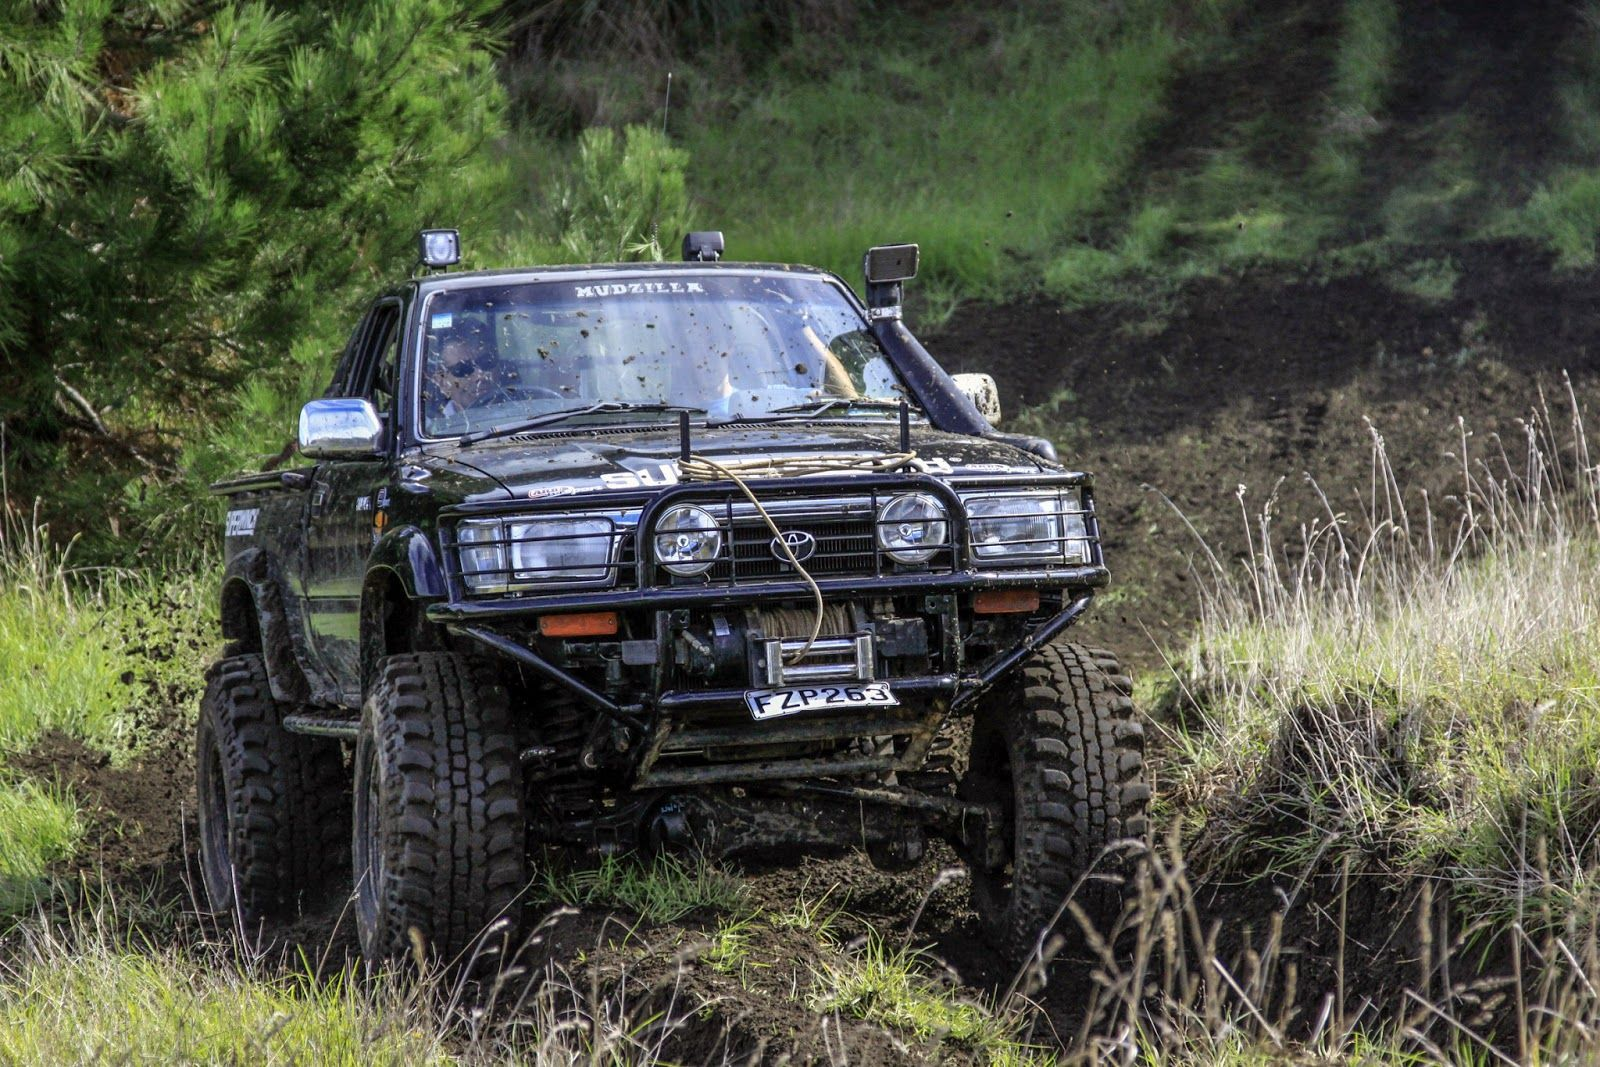 hilux 4x4 off road toyota hilux 4x4 1992 pinterest 4x4 and toyota. Black Bedroom Furniture Sets. Home Design Ideas